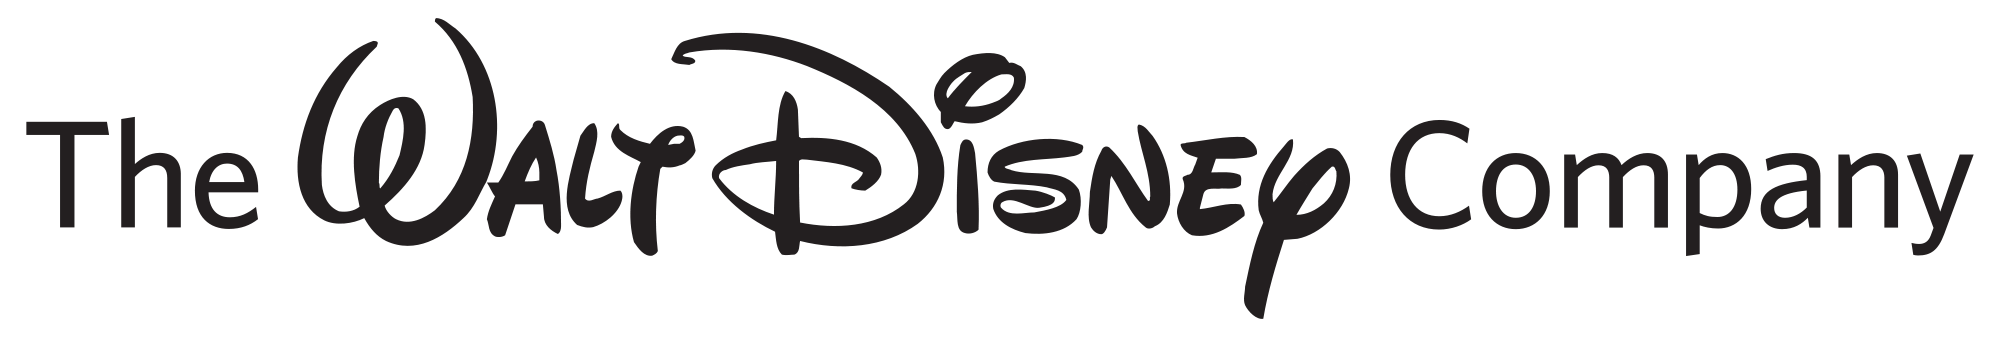 Net income of the Walt Disney Company 2006-2017